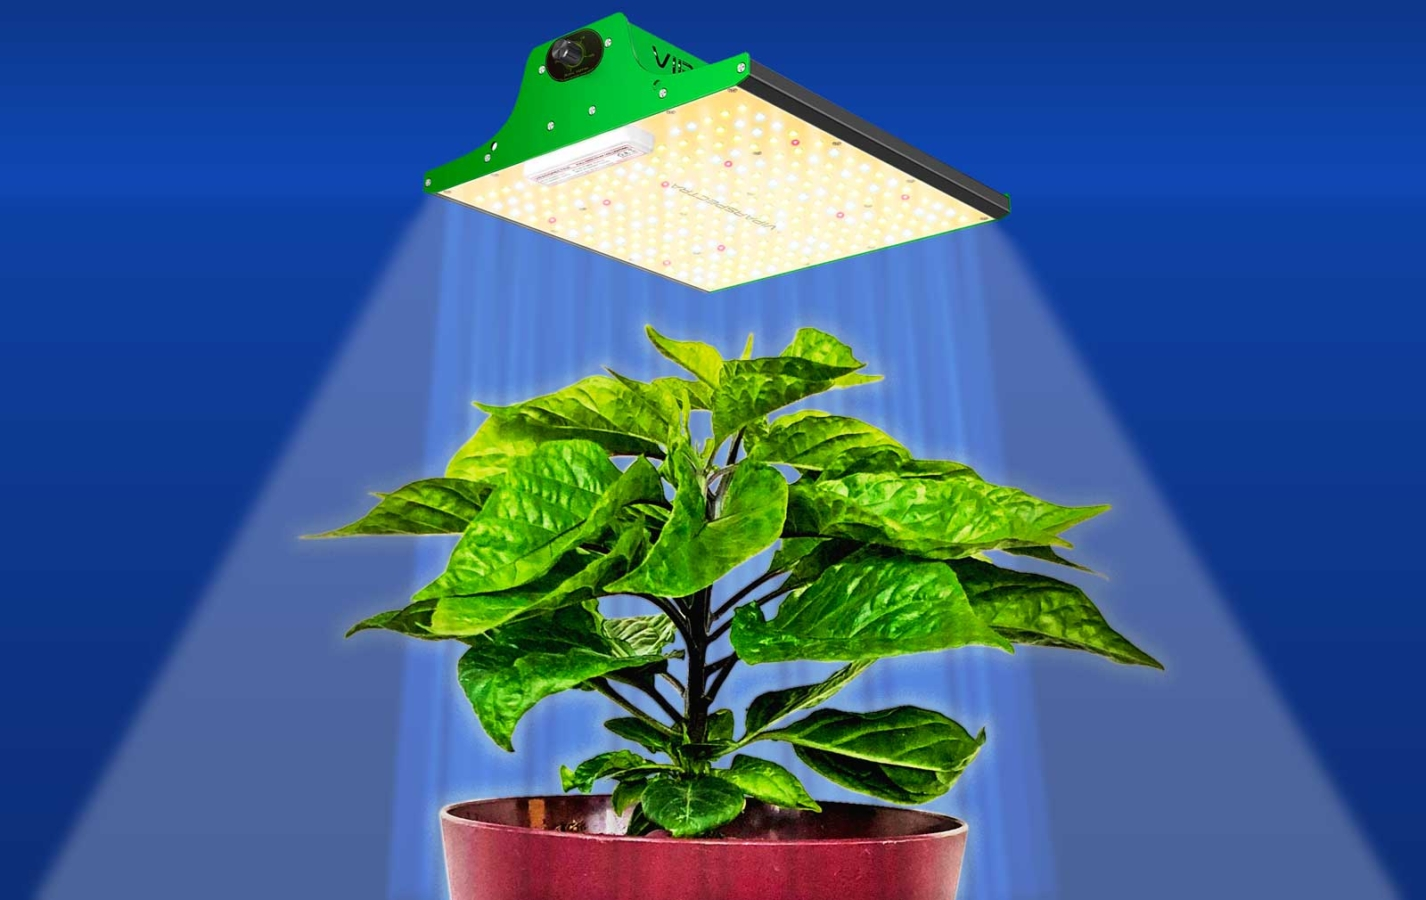 Photo of a VIPARSPECTRA grow light lighting a young hot pepper plant